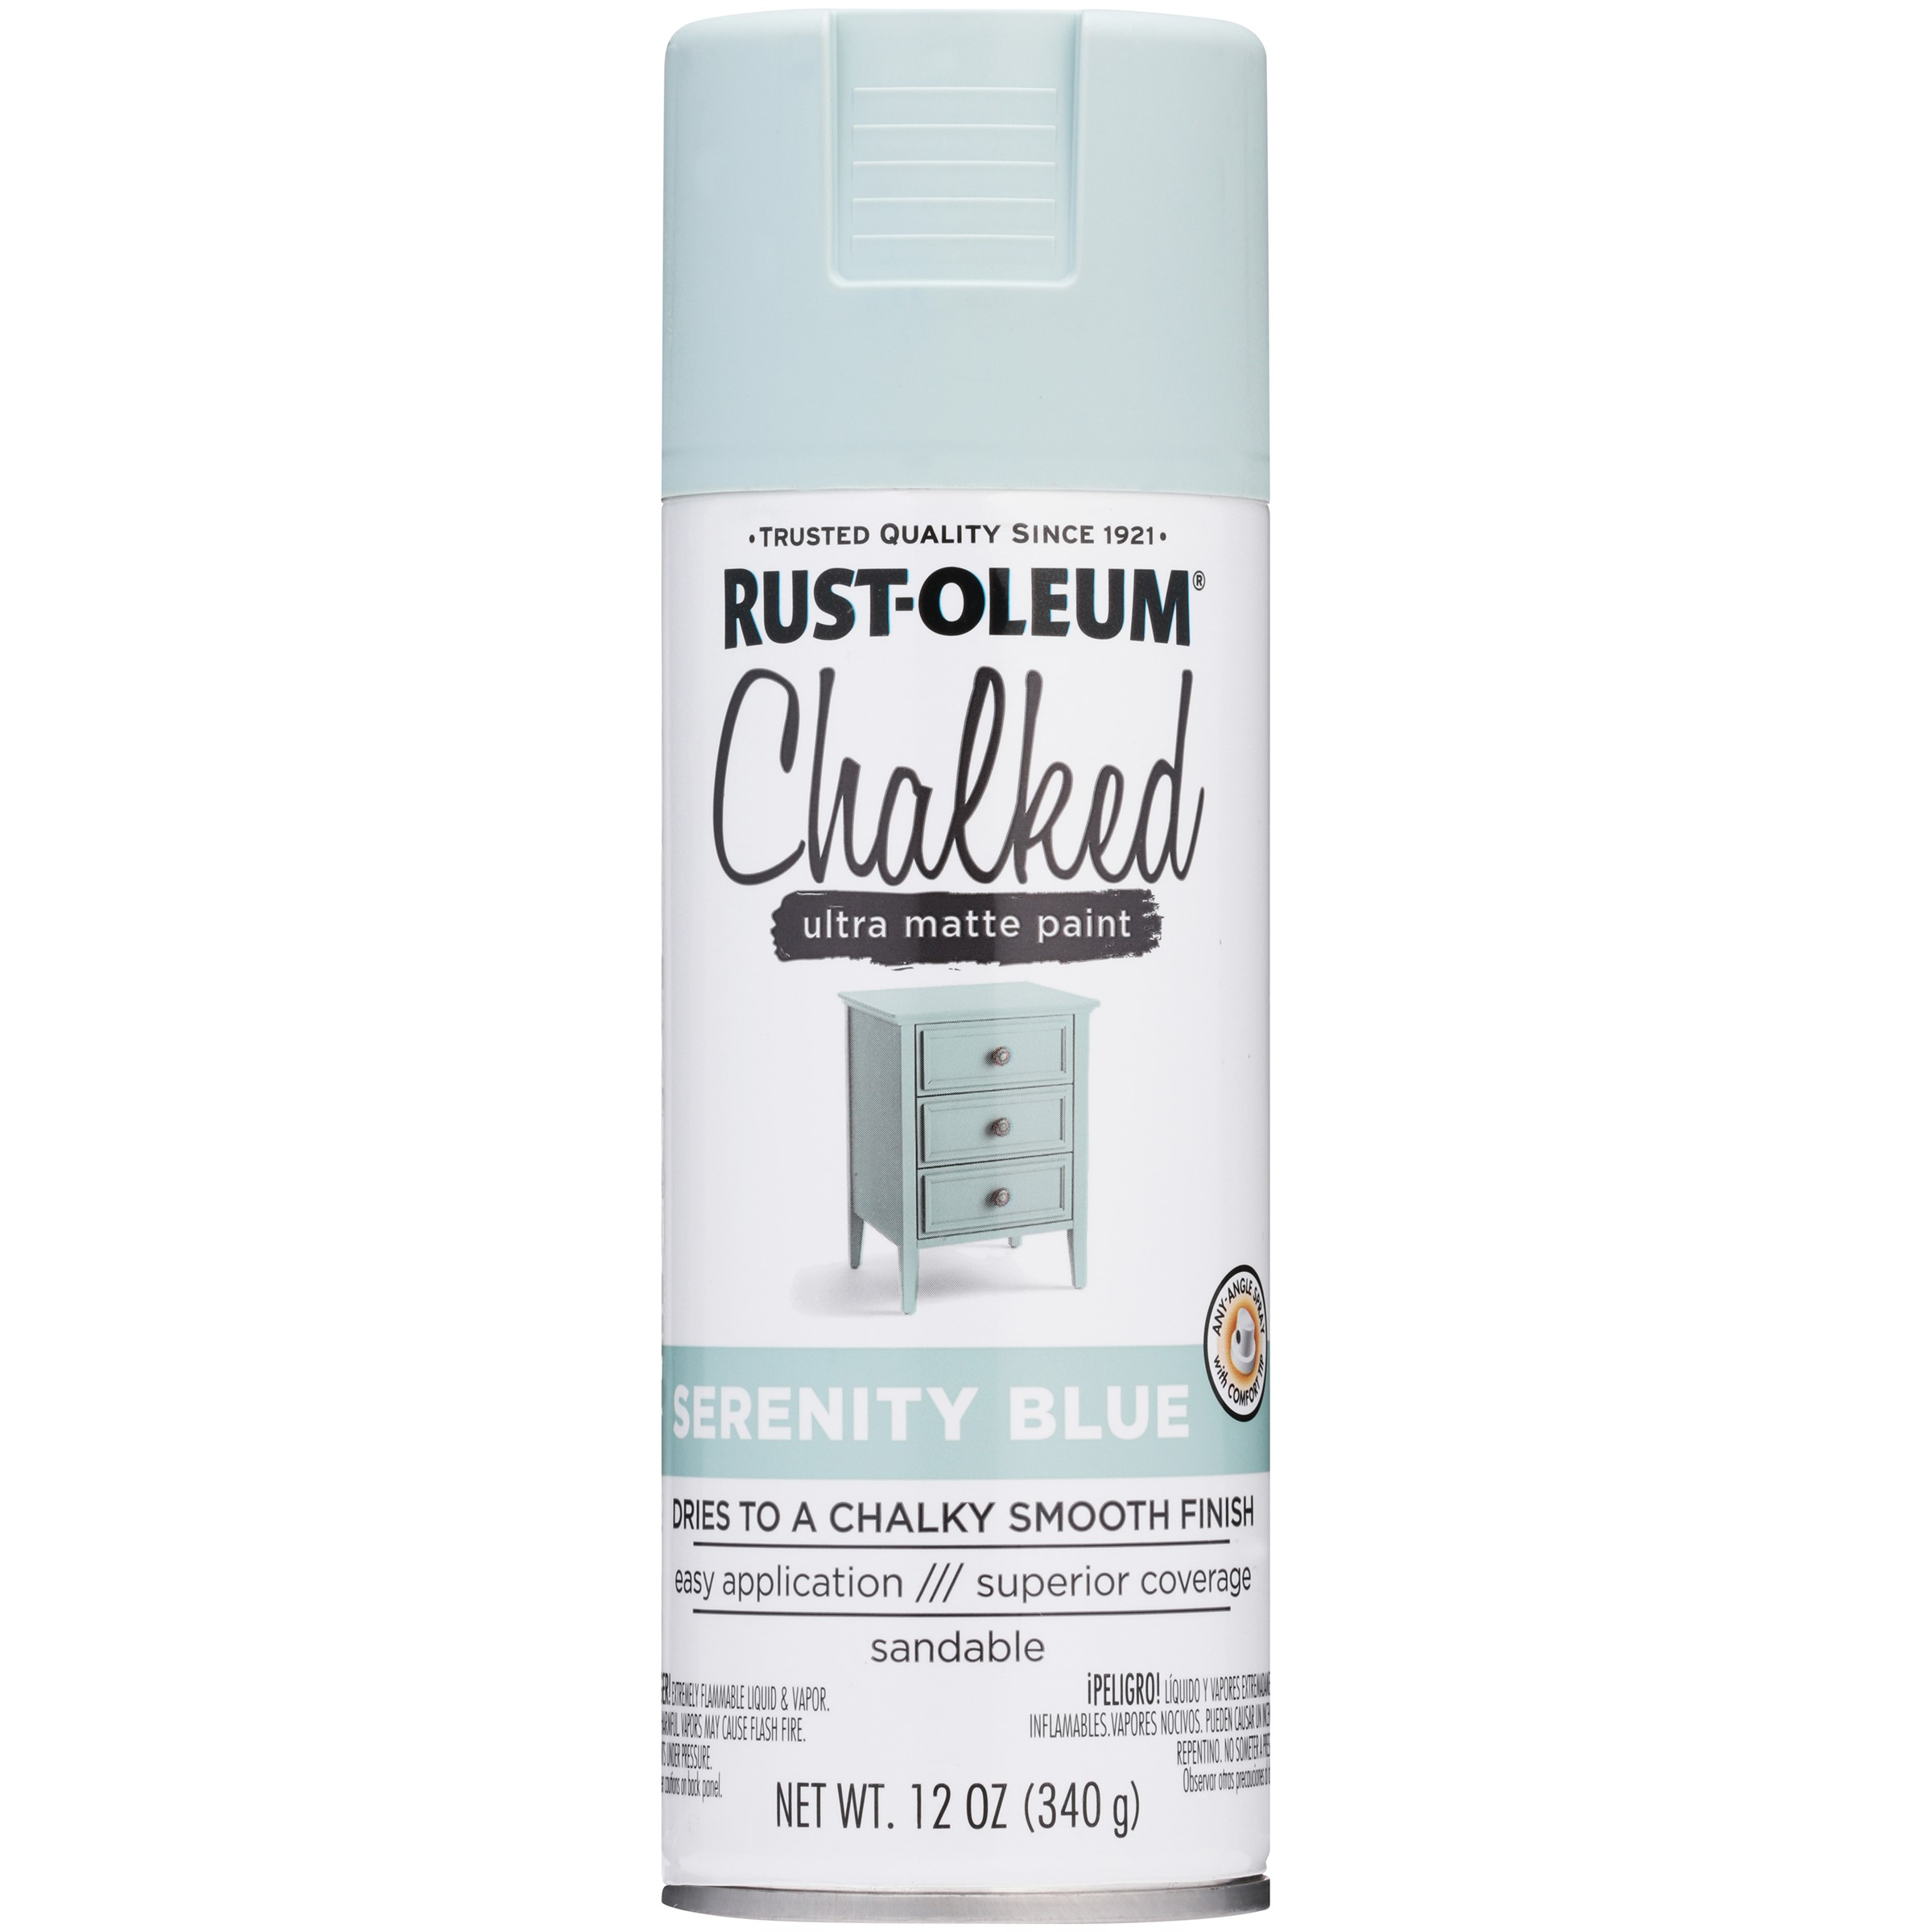 Rust-Oleum® Chalked Serenity Blue Ultra Matte Paint 12 oz. Can